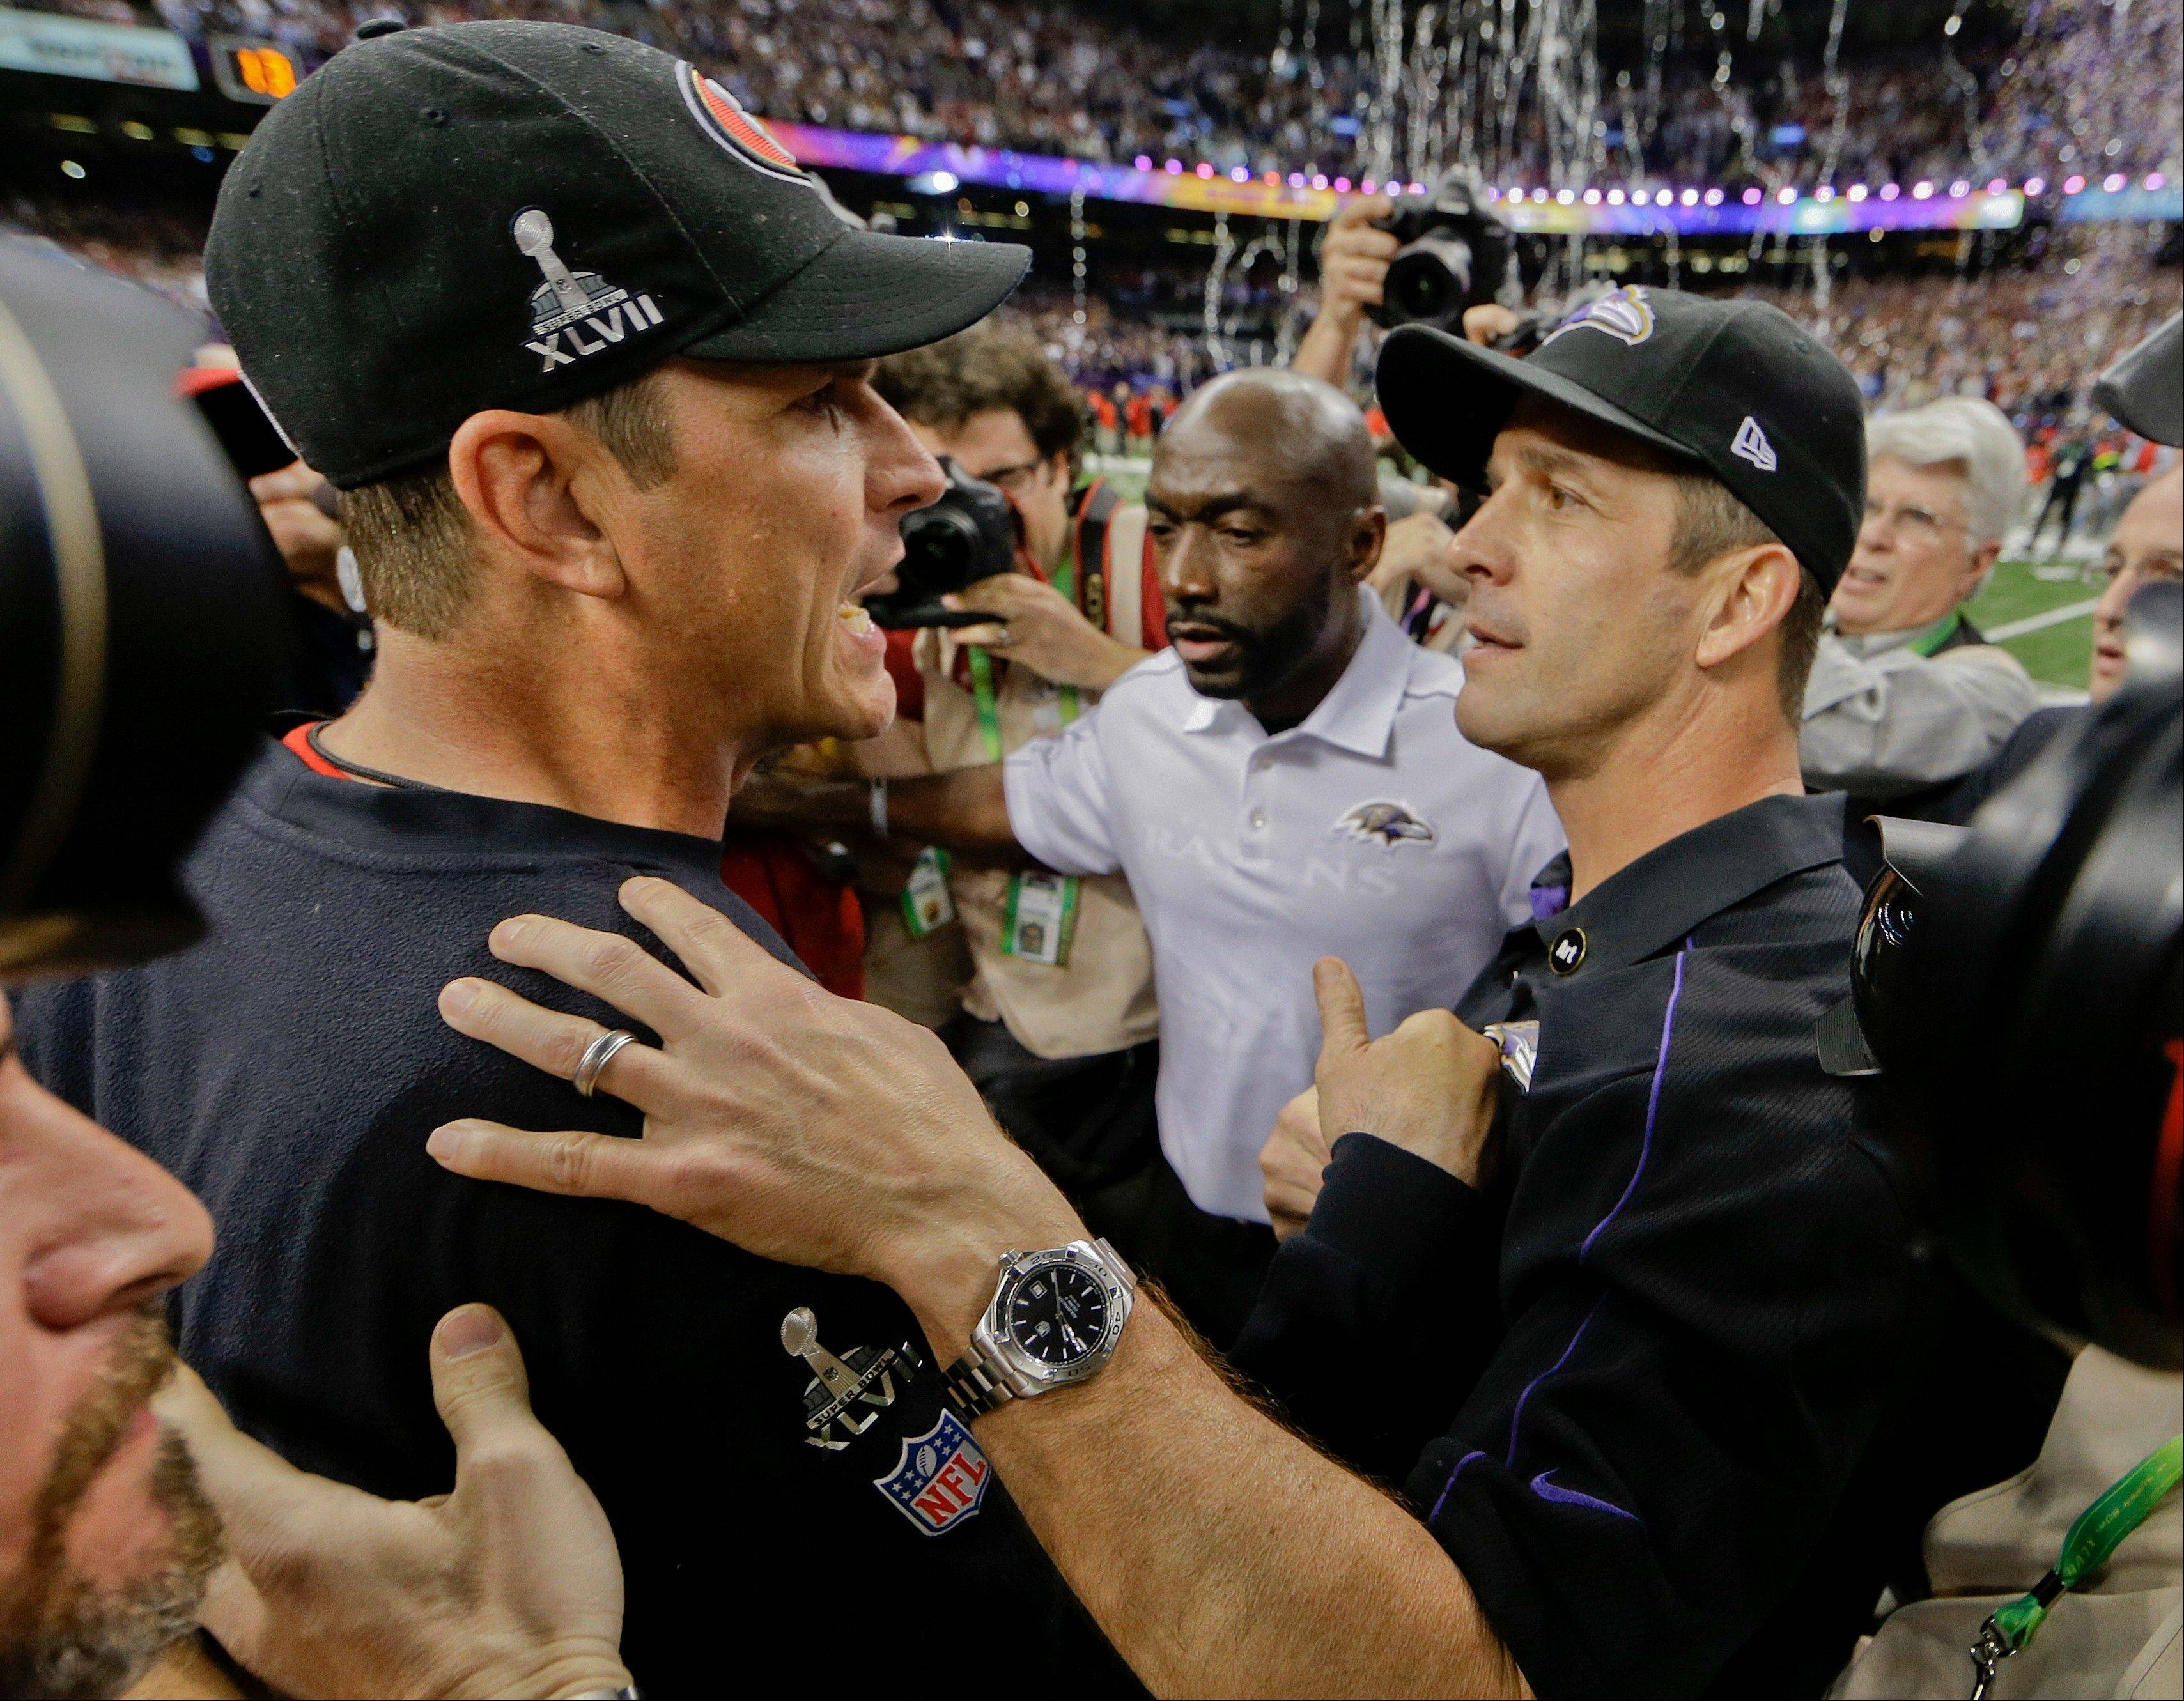 San Francisco 49ers head coach Jim Harbaugh, left, greets Baltimore Ravens head coach John Harbaugh after the Ravens defeated the 49ers 34-31 in the NFL Super Bowl XLVII football game.